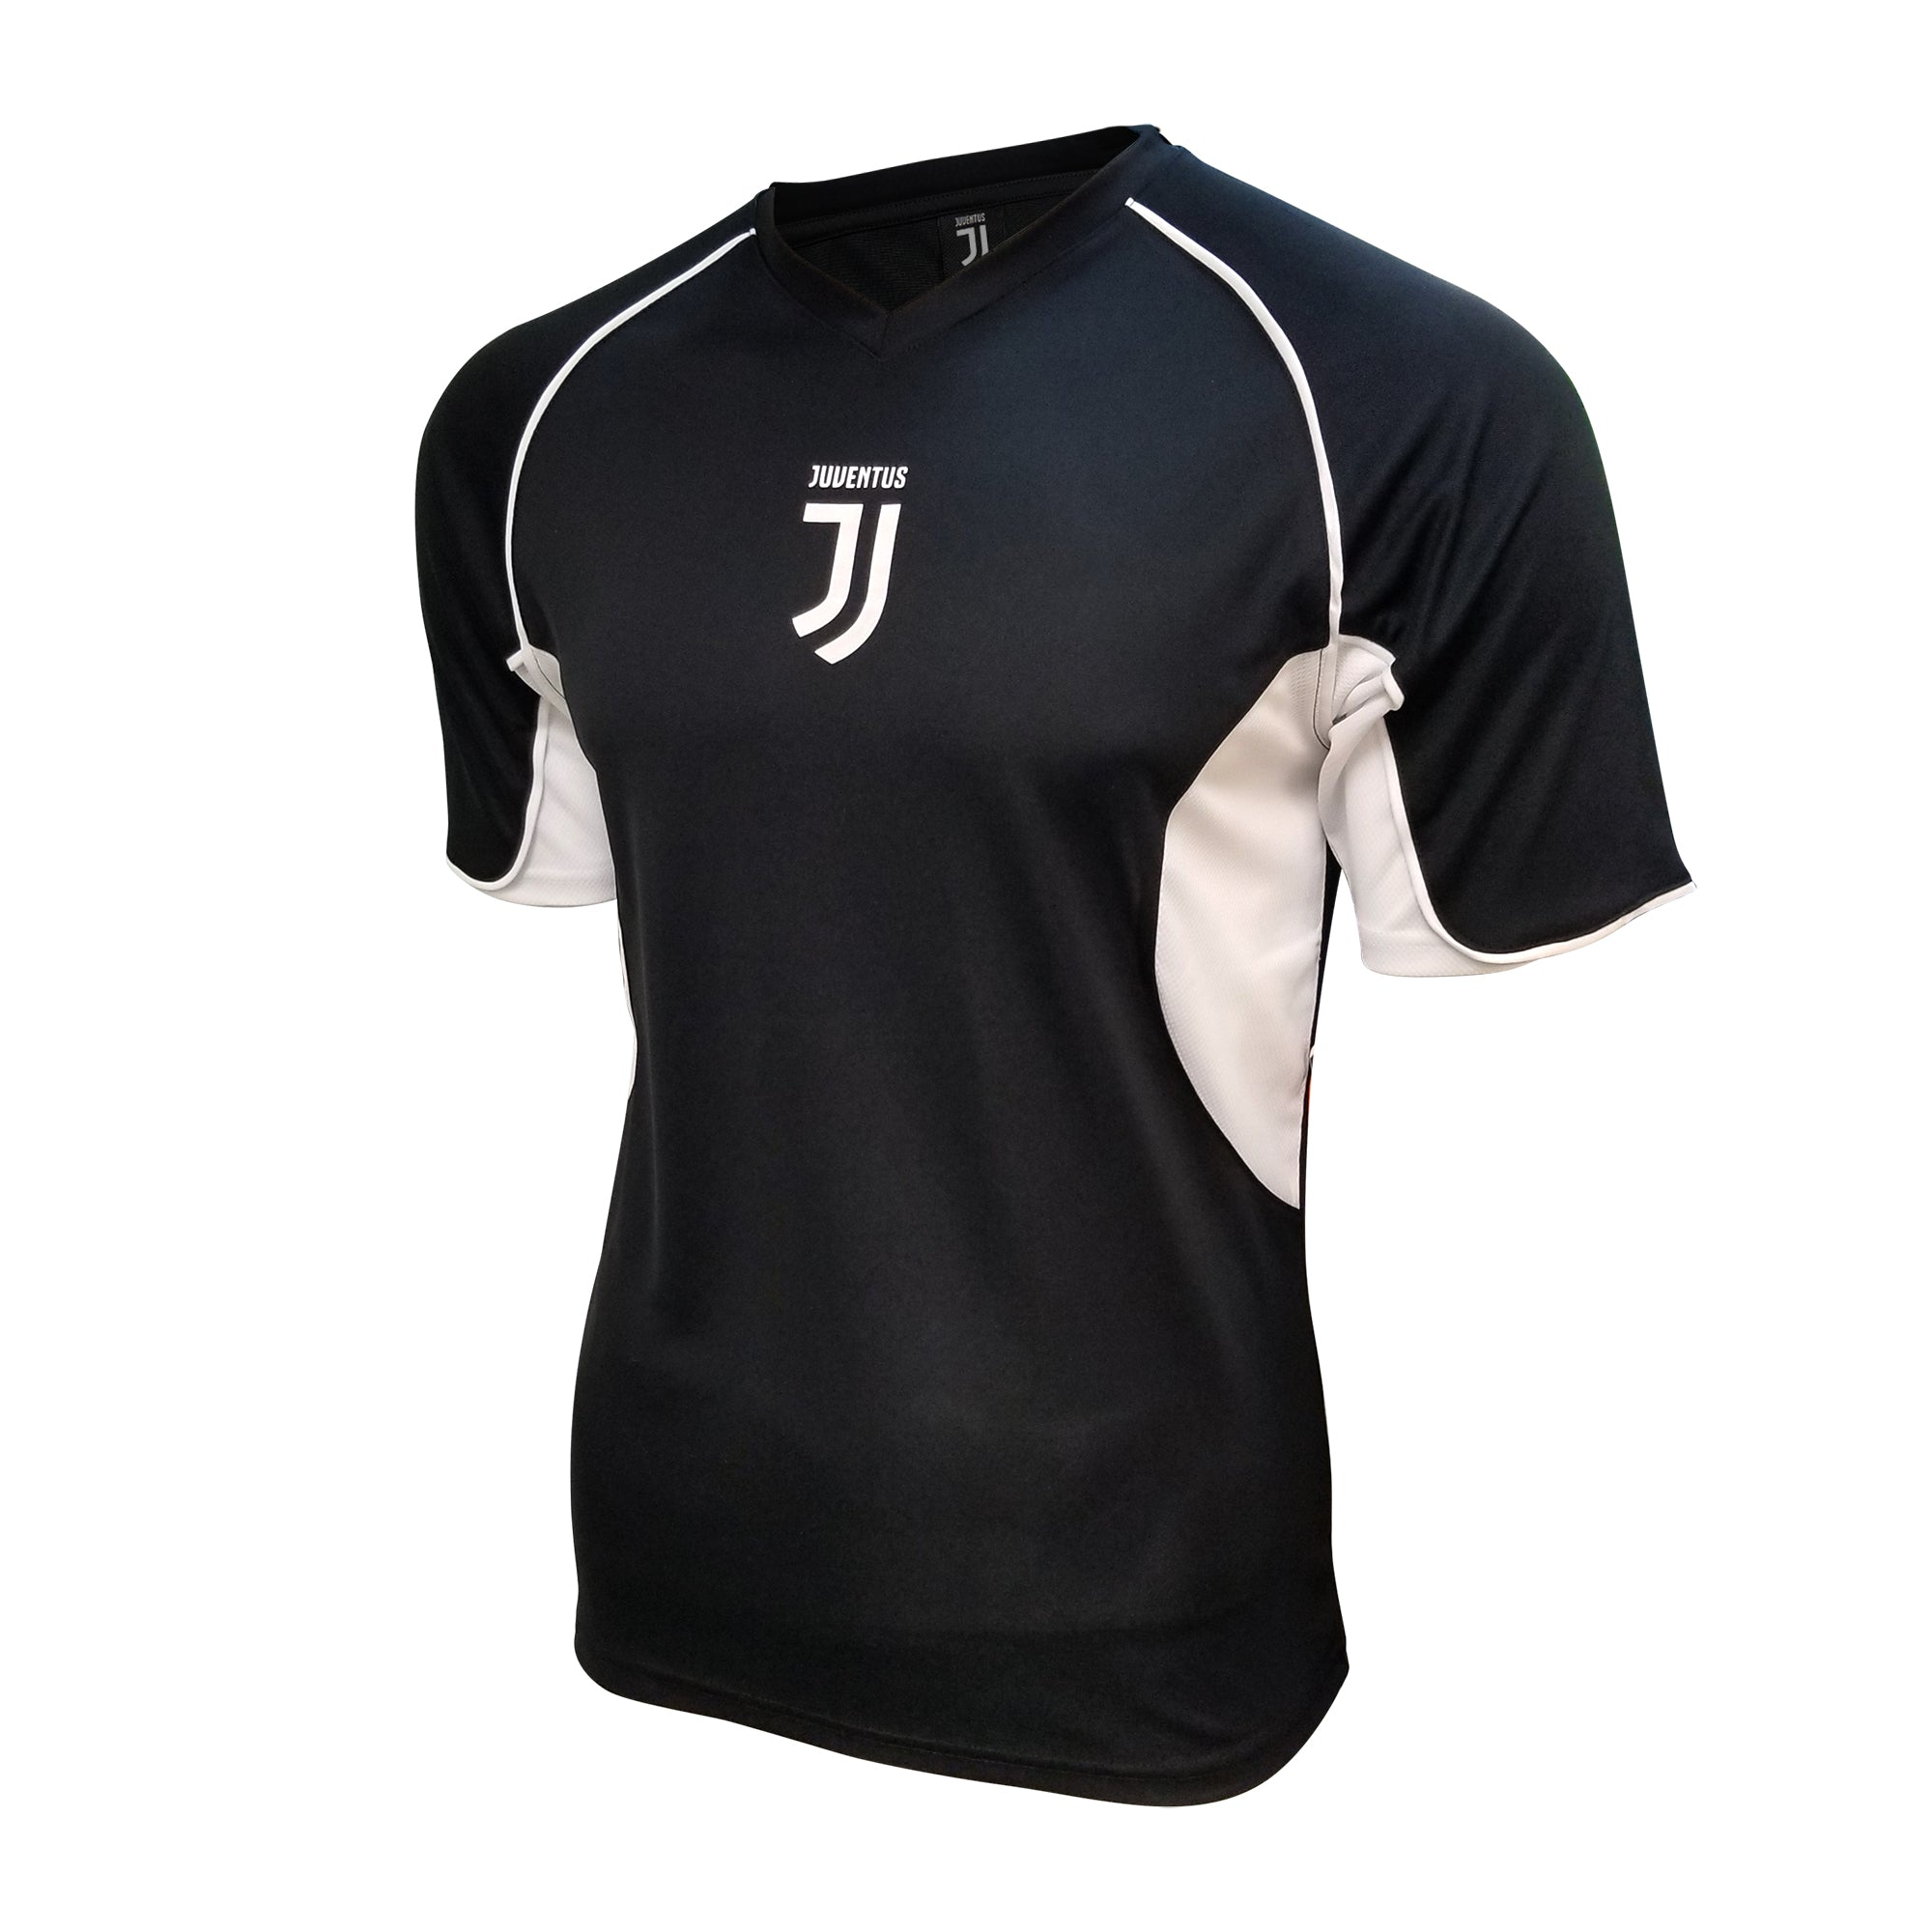 Juventus Rearview Game Day Shirt - Black by Icon Sports